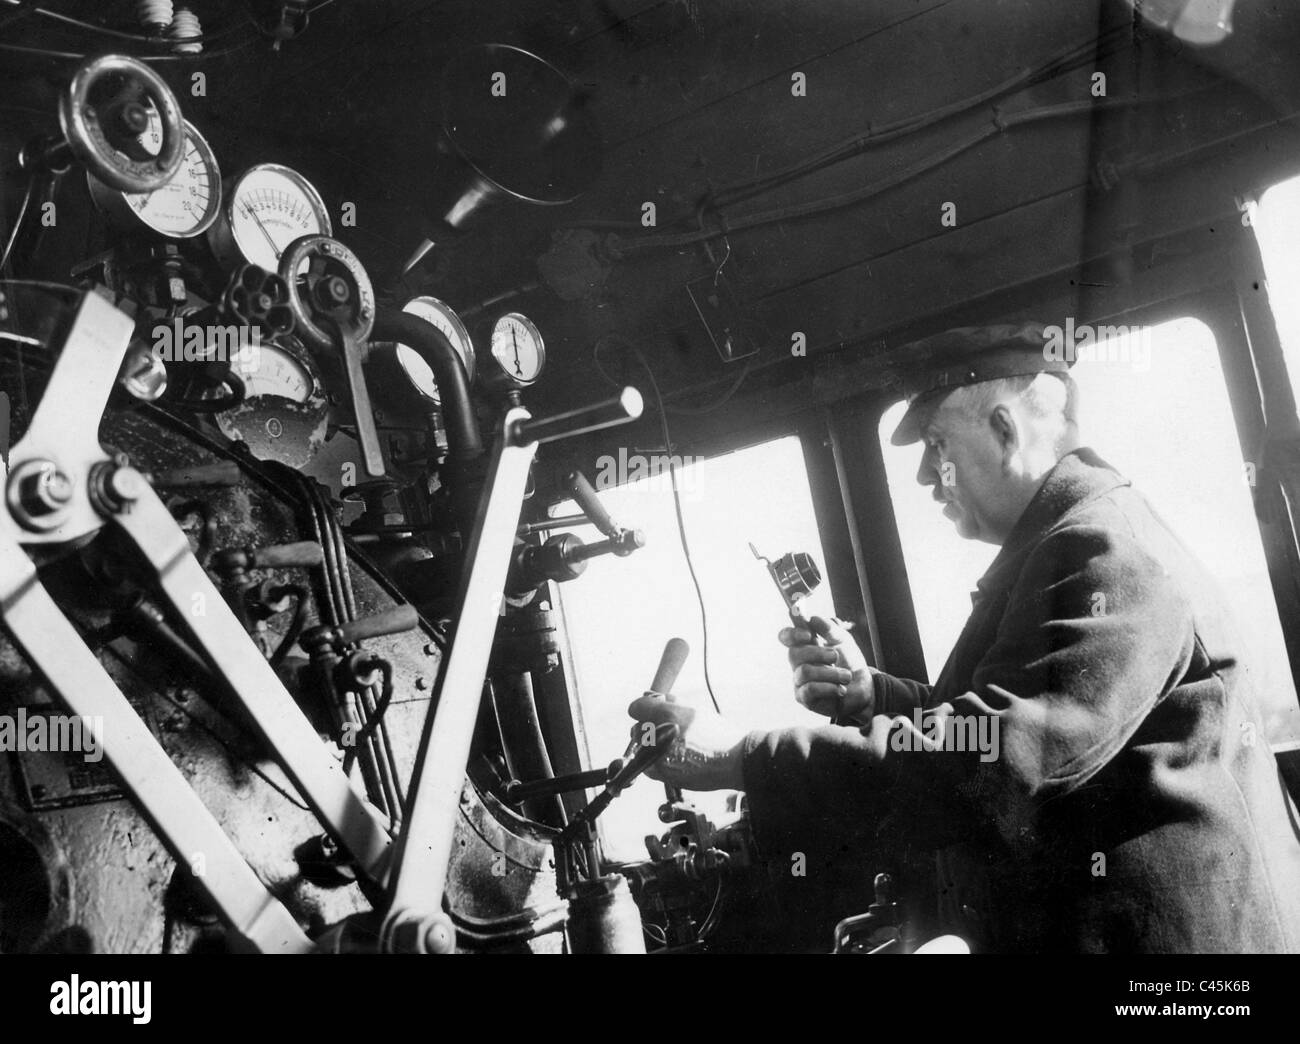 Locomotive engineer of the Reich railway, 1930 - Stock Image